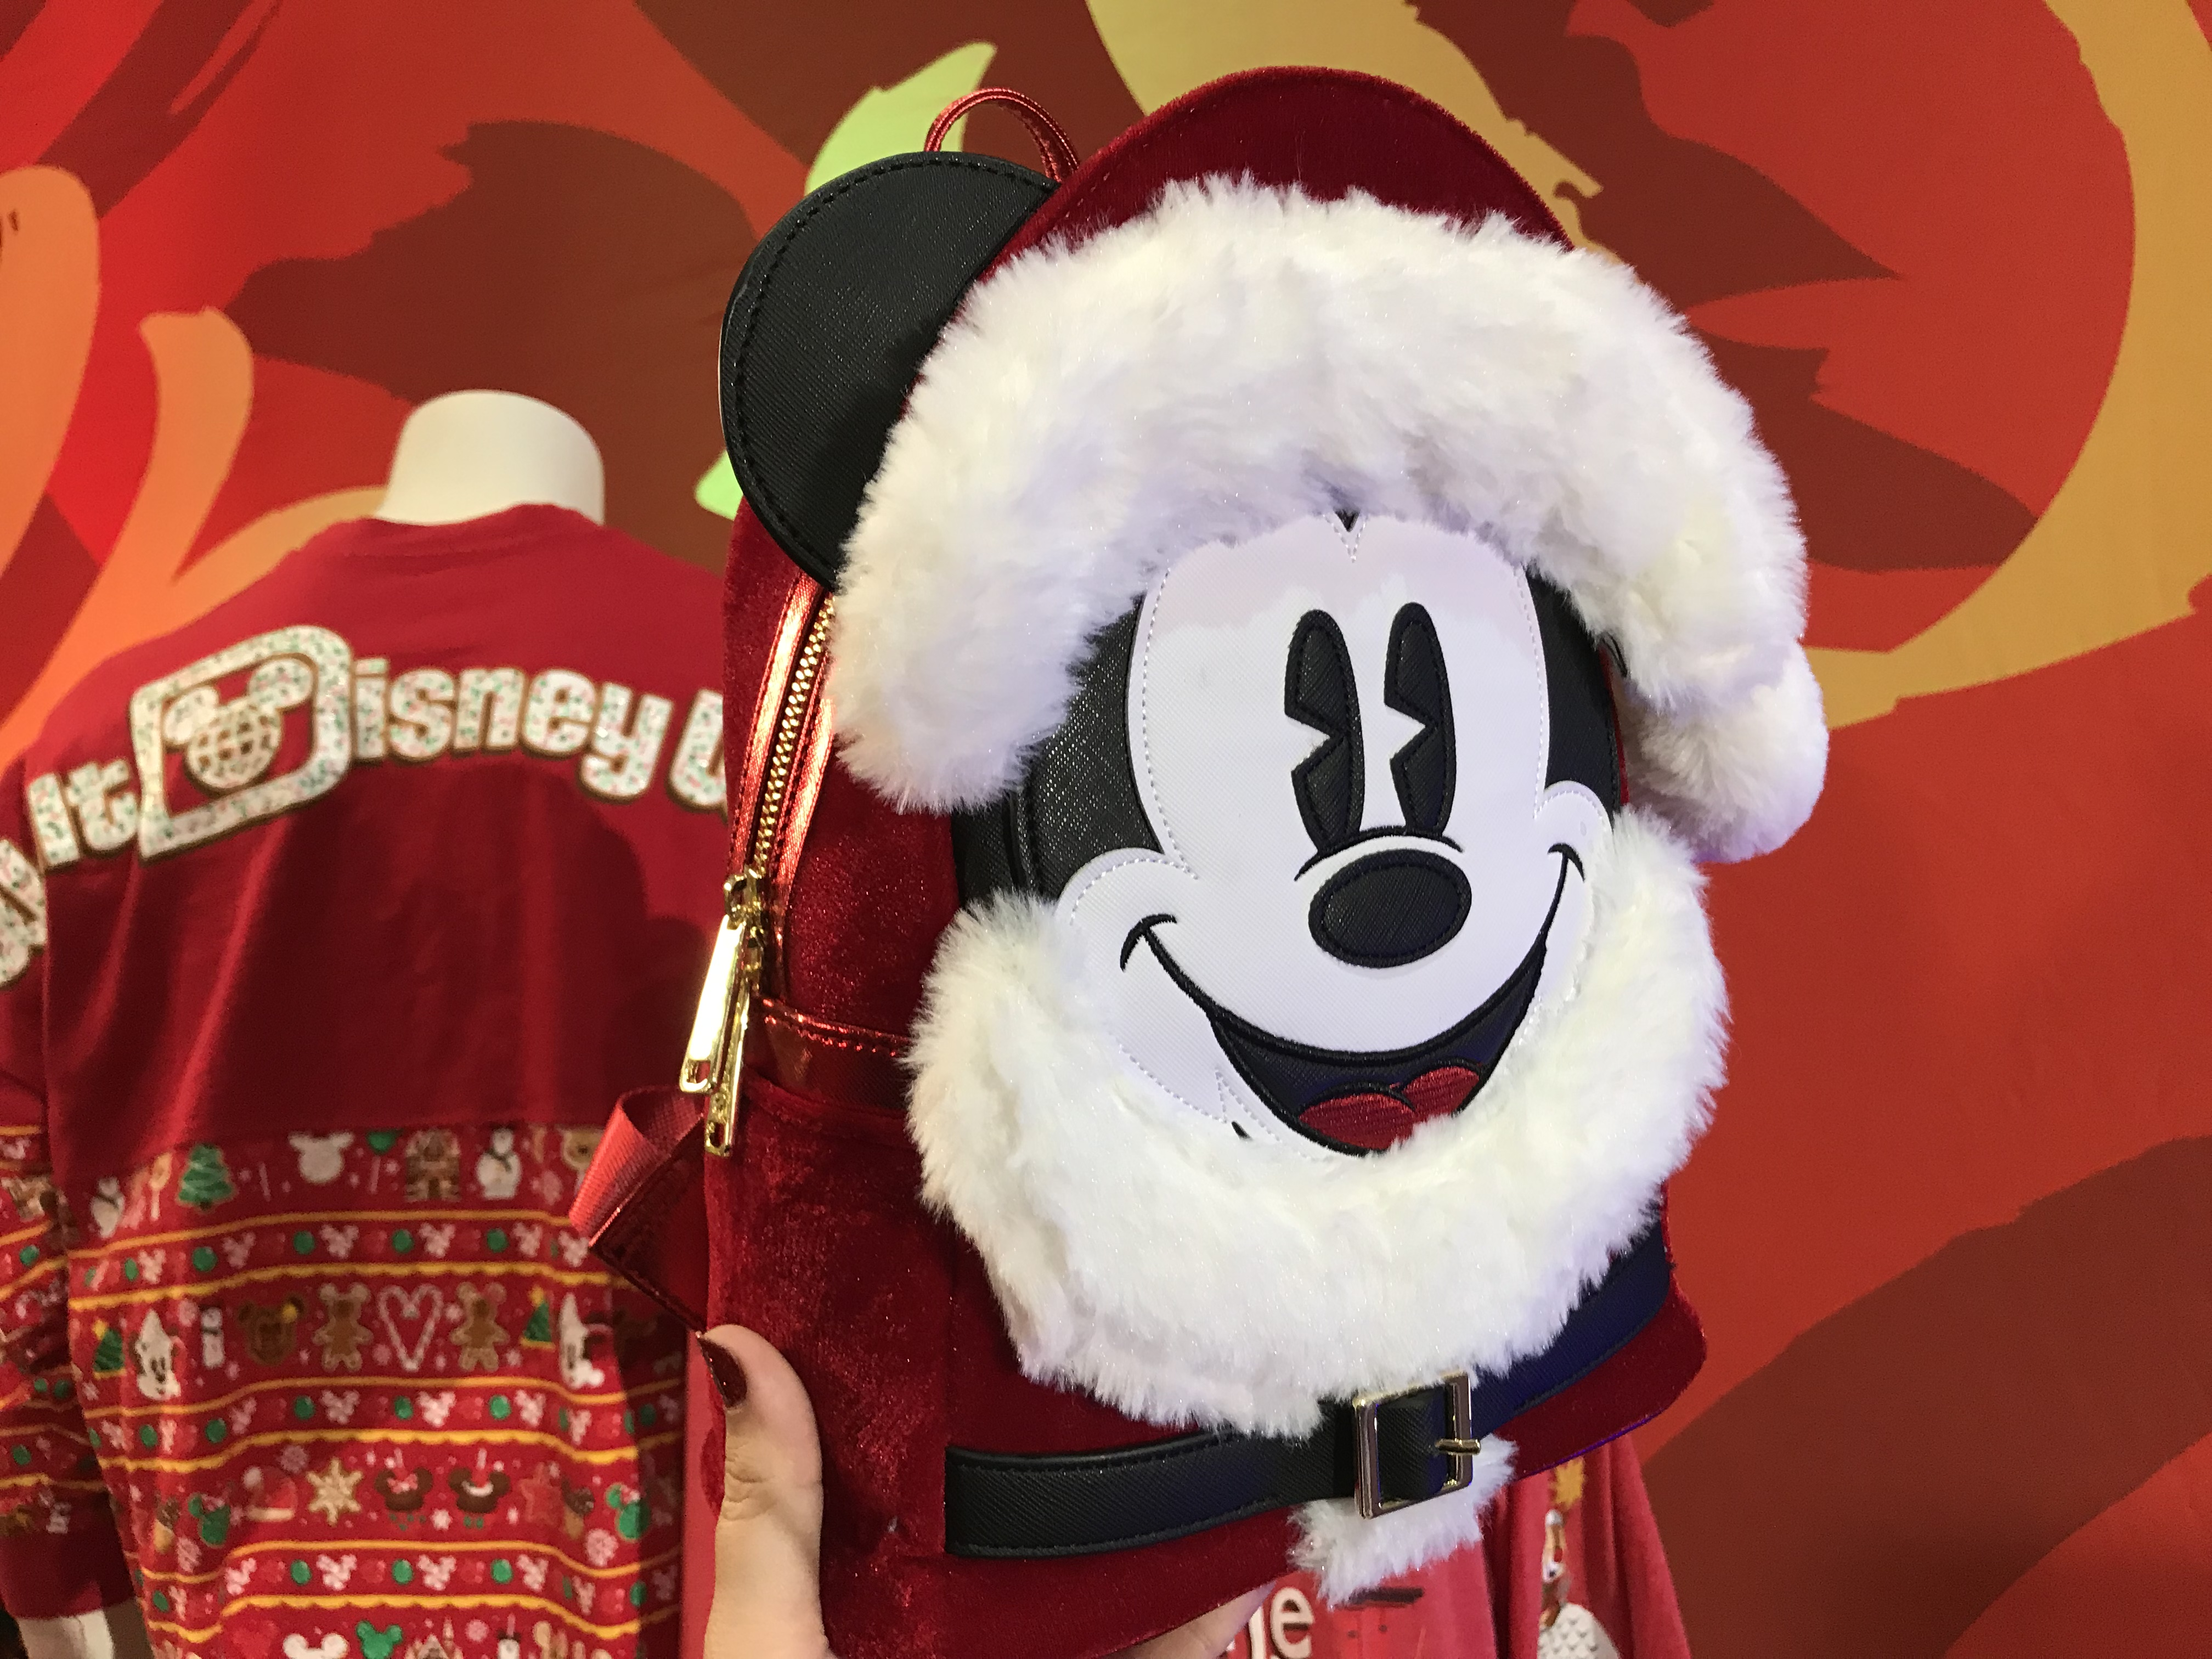 Fabulous Disney Holiday Merchandise Revealed At Disney's Christmas In July 6